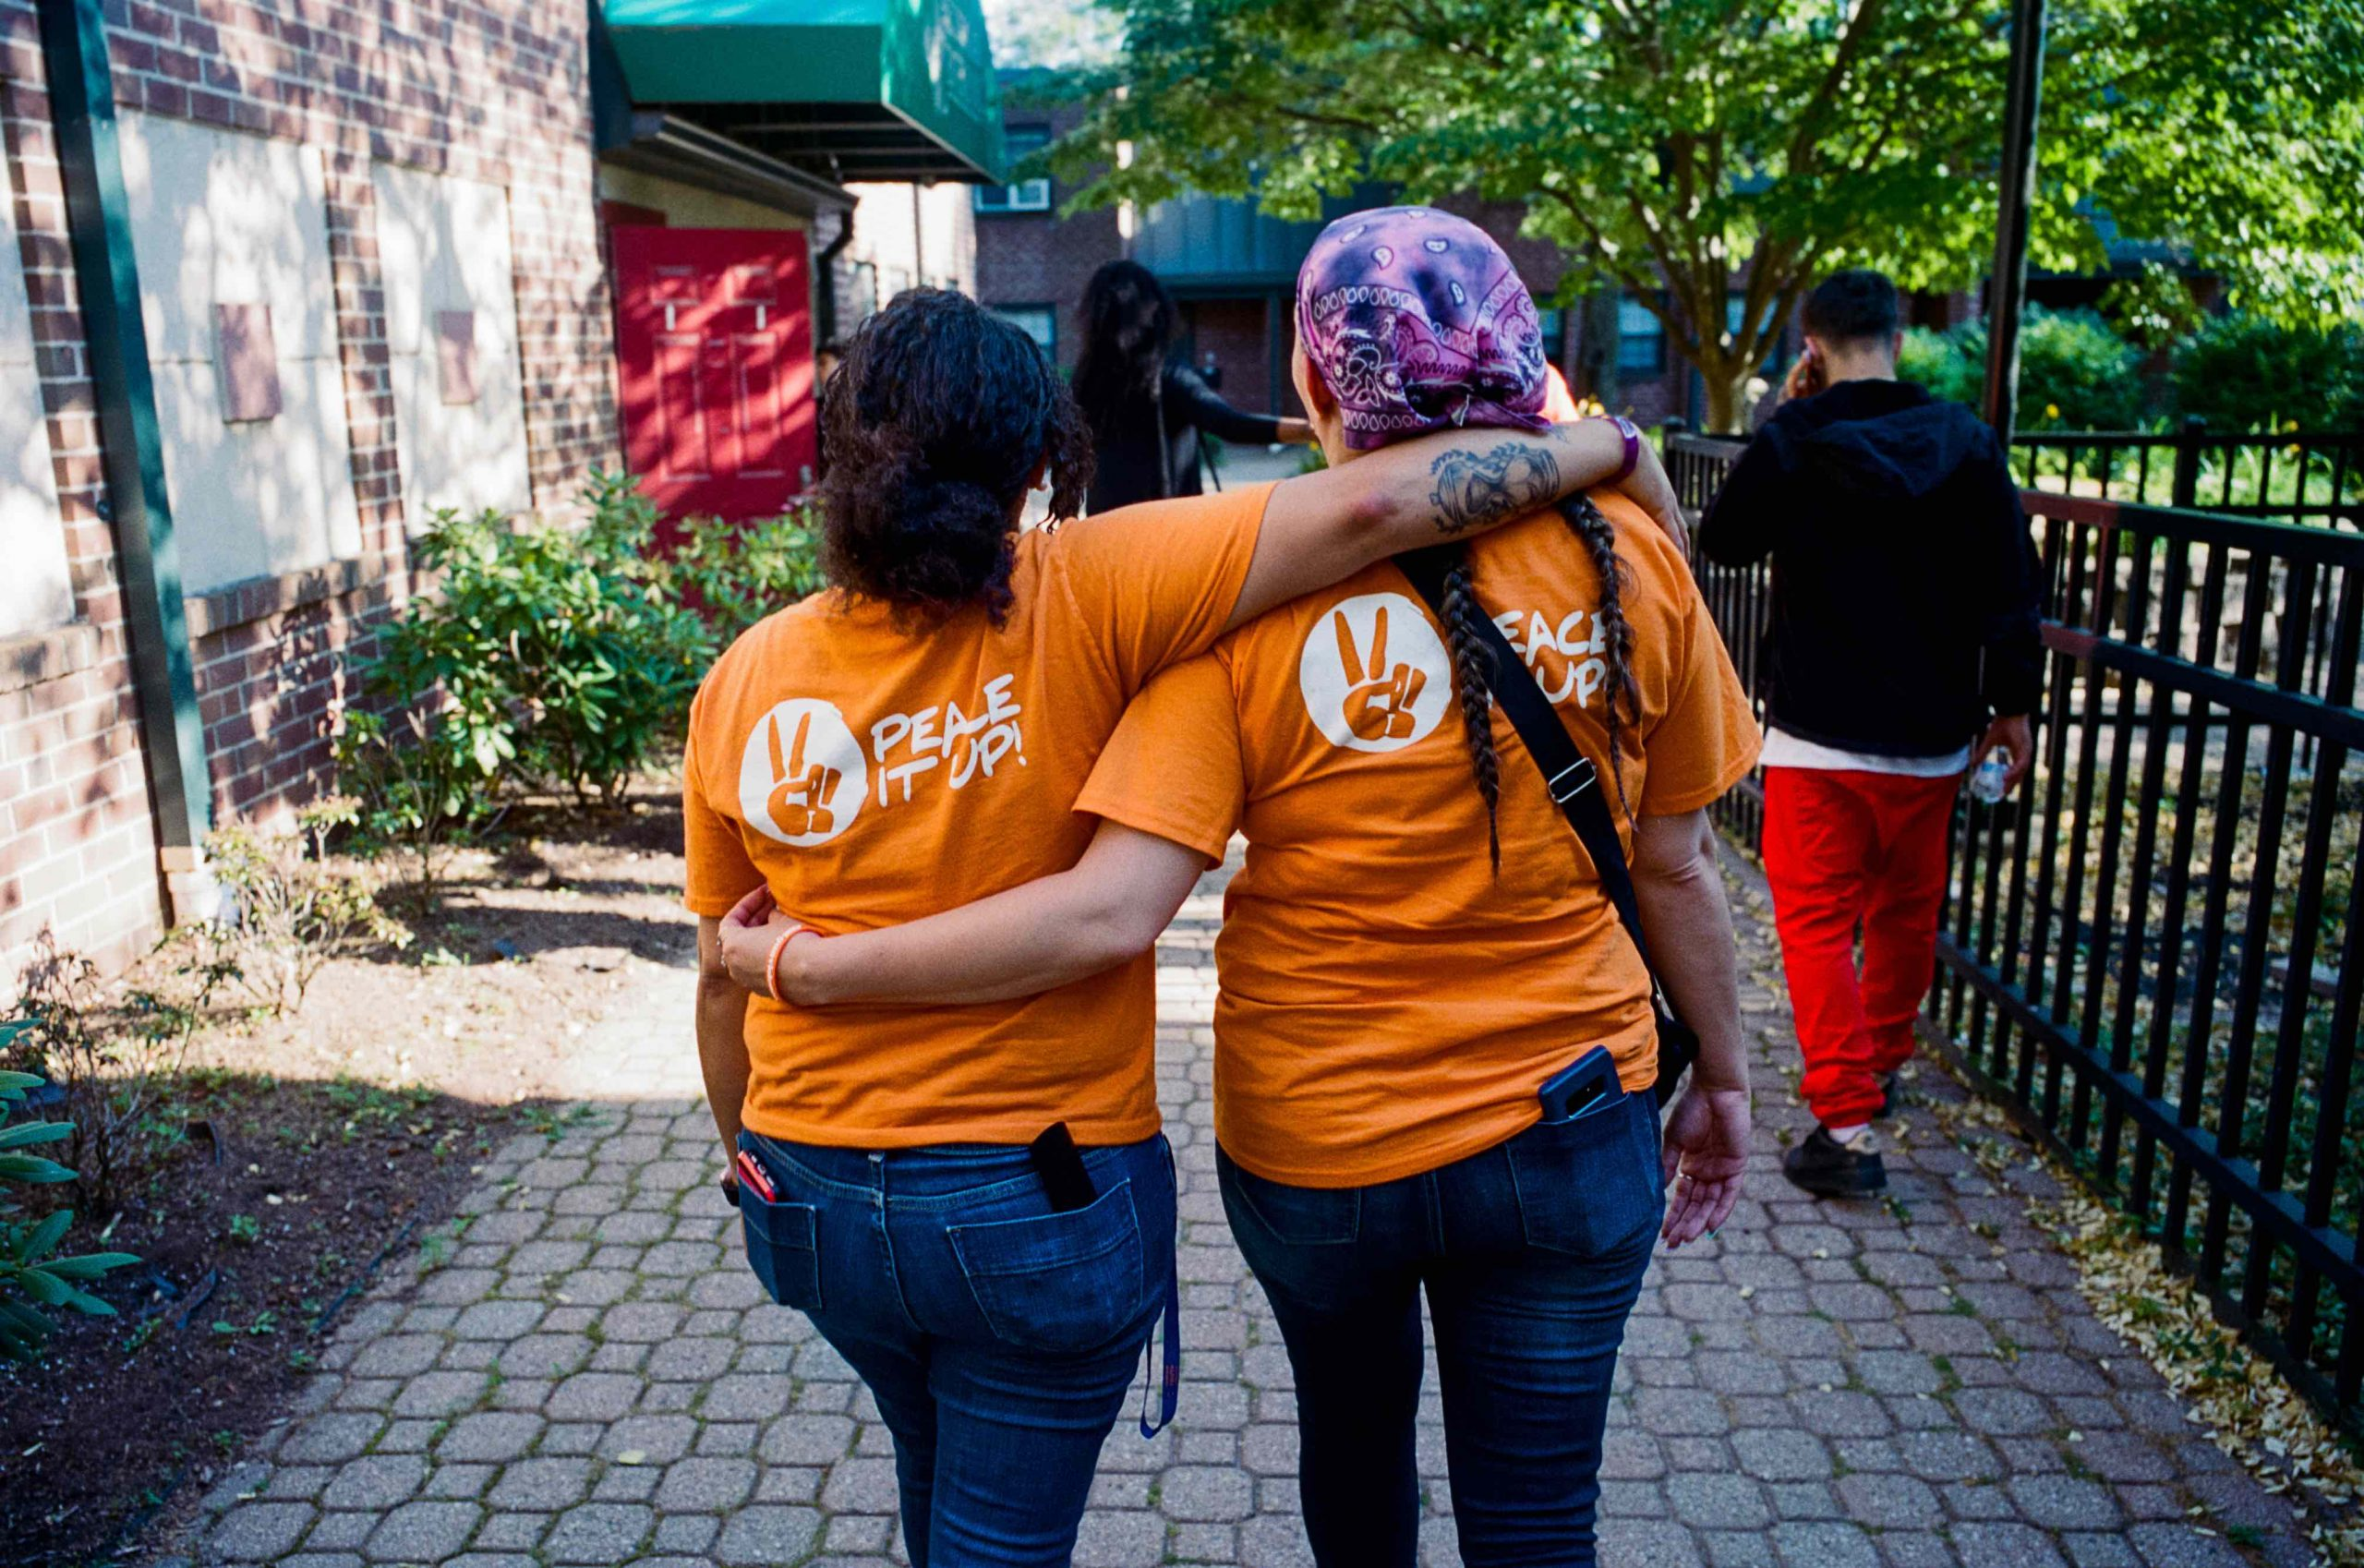 two women walking away from camera wearing jeans and orange t-shirts with Peace it up written on the back